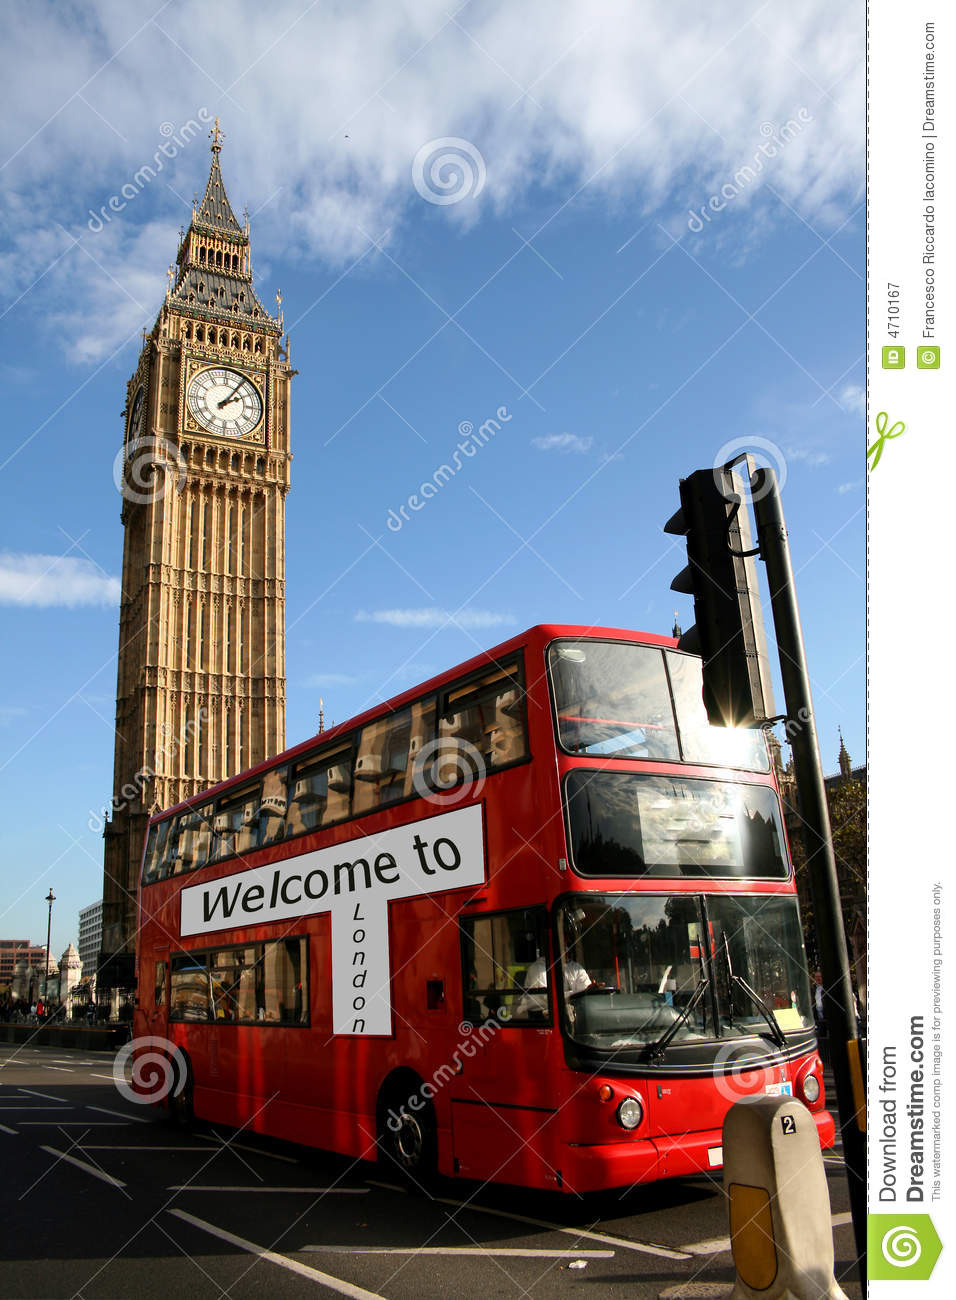 Welcome to london,bus & bigben